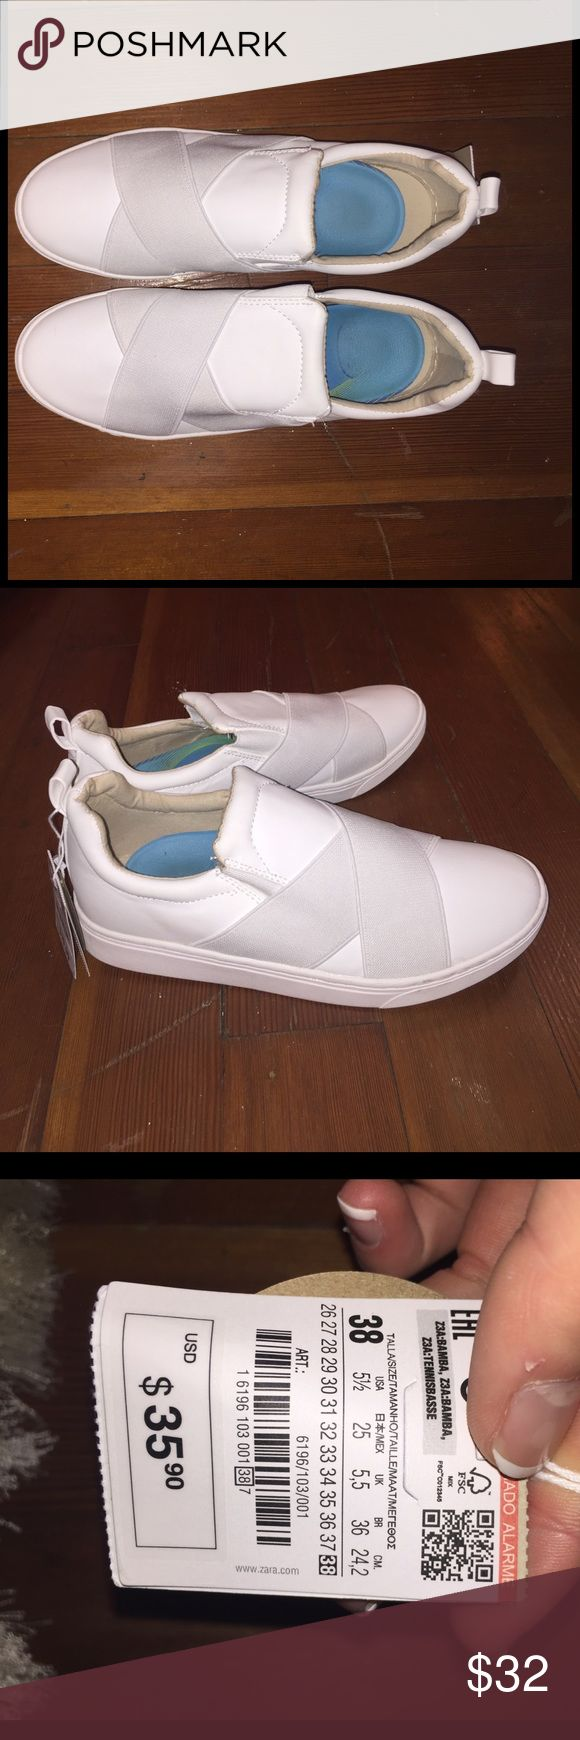 zara kids join life collection slip on shoes comfy white hip shoes. fits big for zara kids. UK 38 Zara Shoes Sneakers